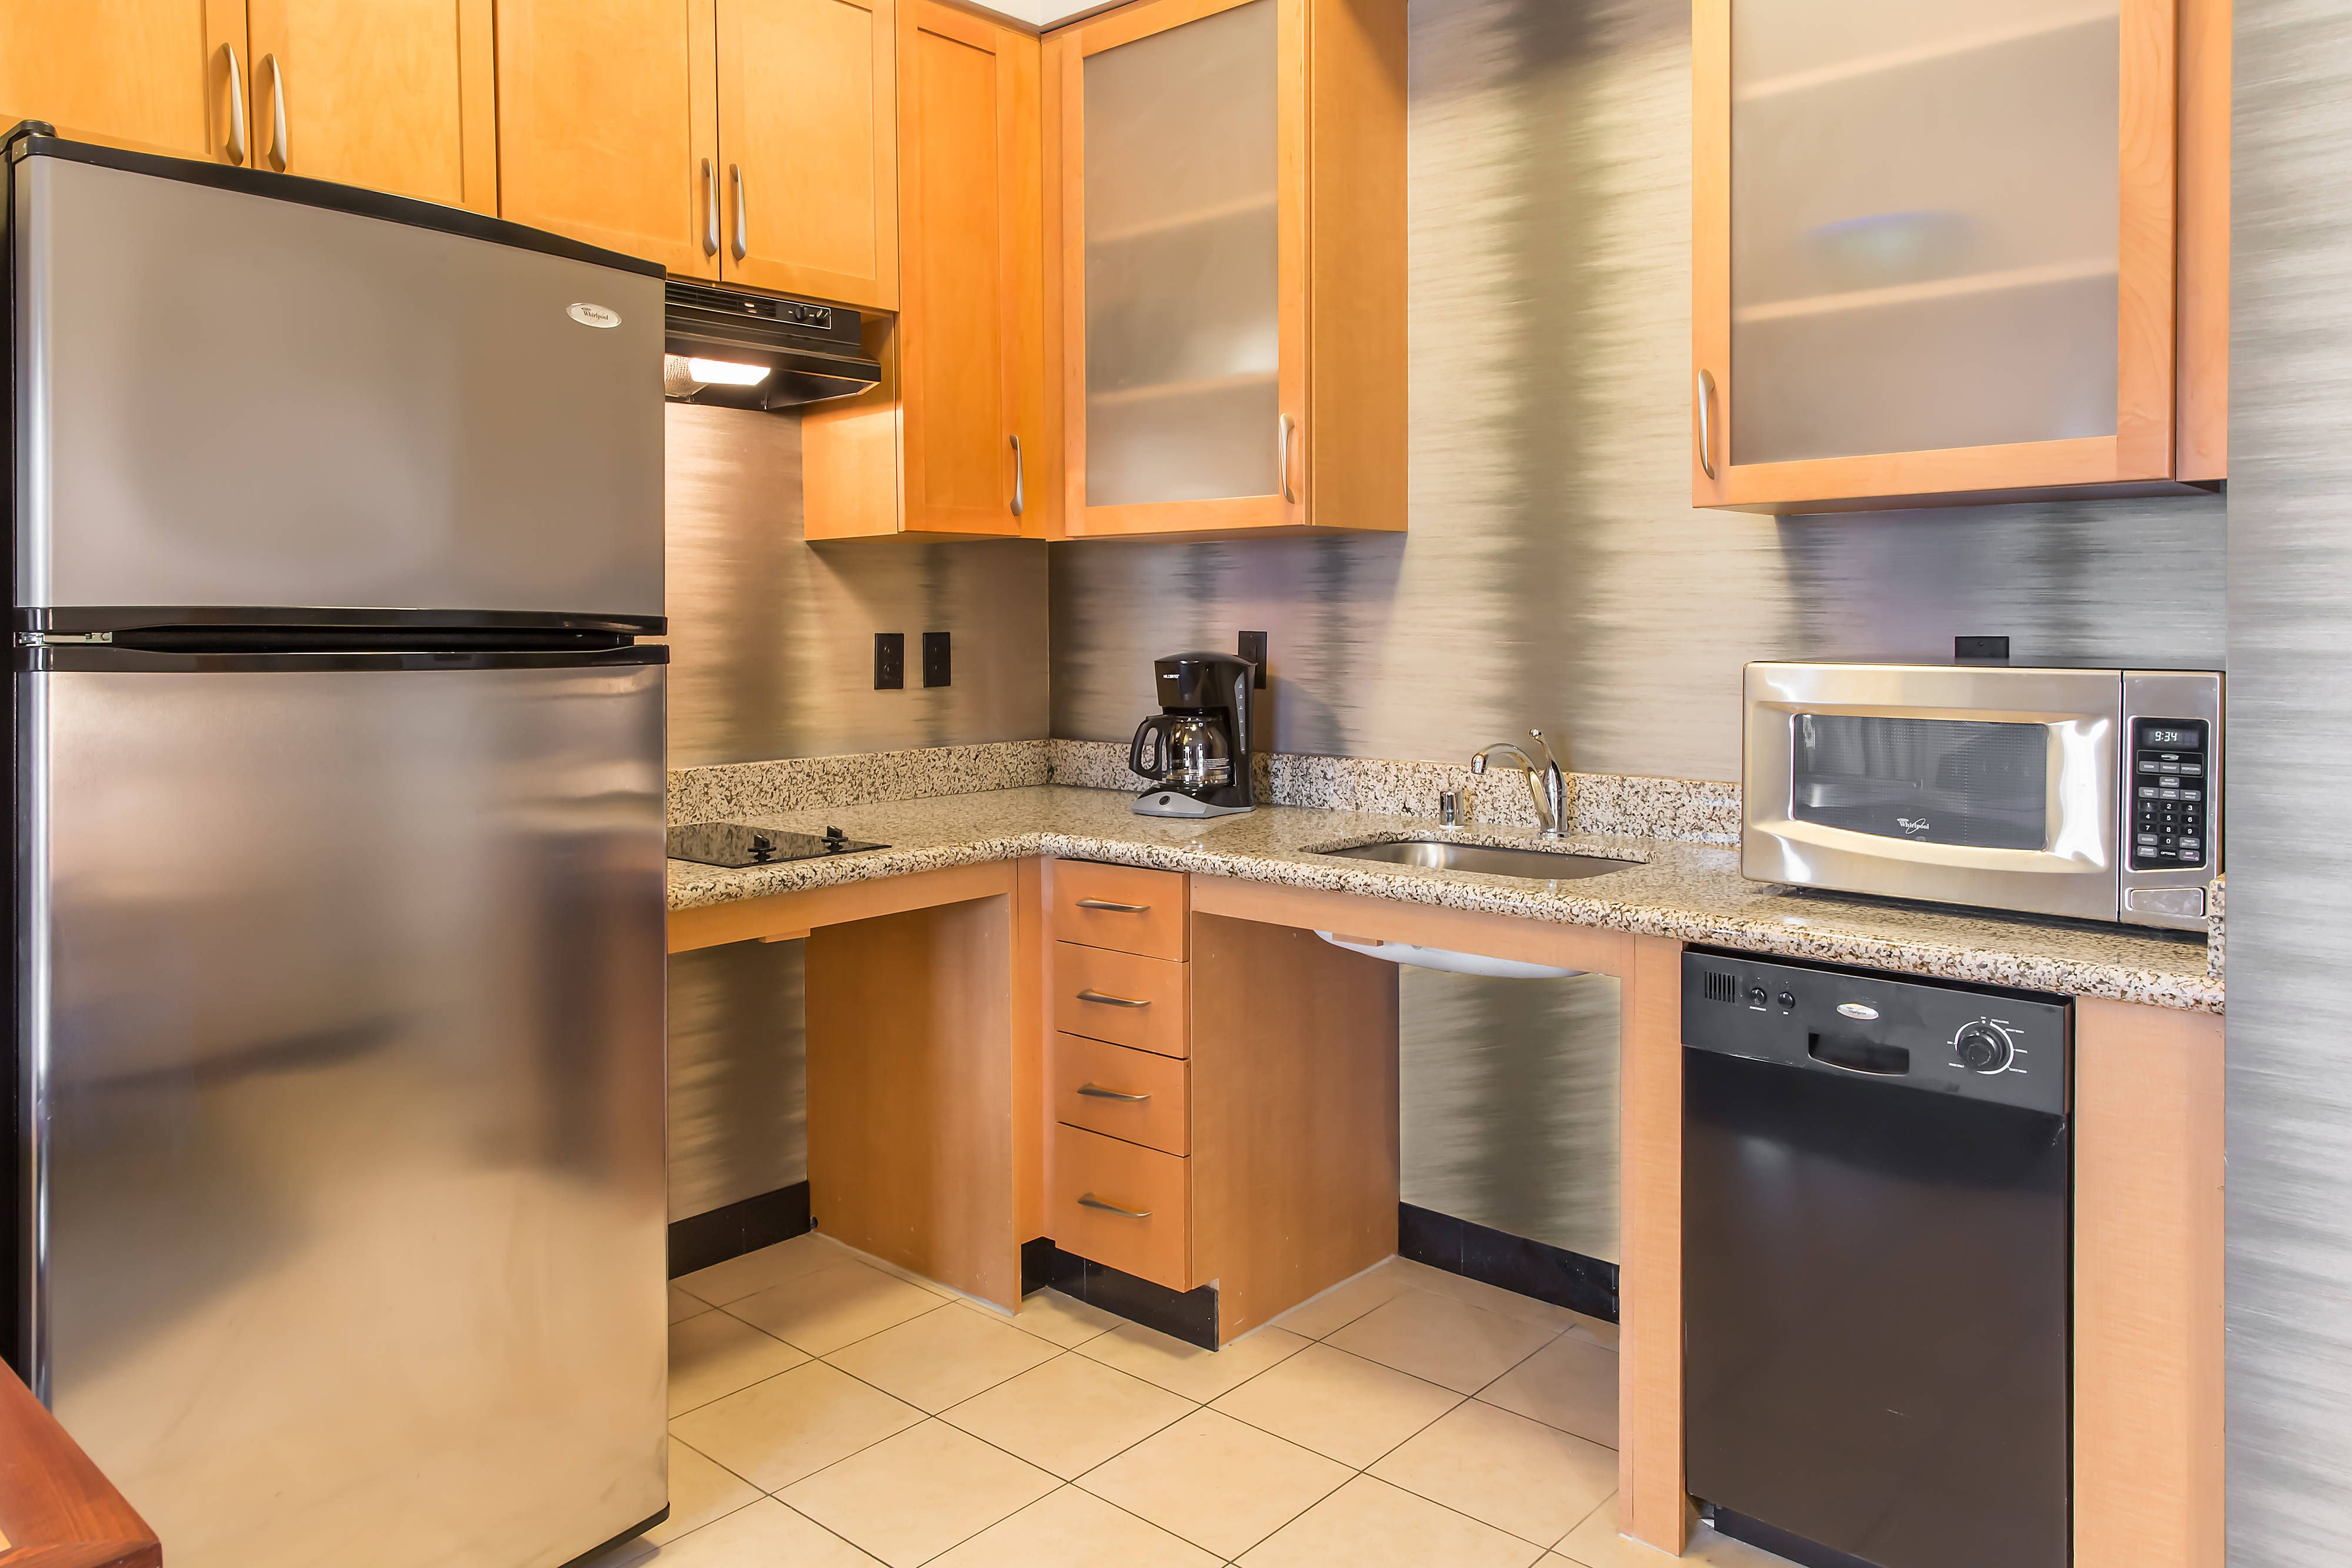 Residence Inn Lexington Keeneland Airport Accessible Studio King Suite Kitchen Guest Happy Rooms Residences Inn Keeneland